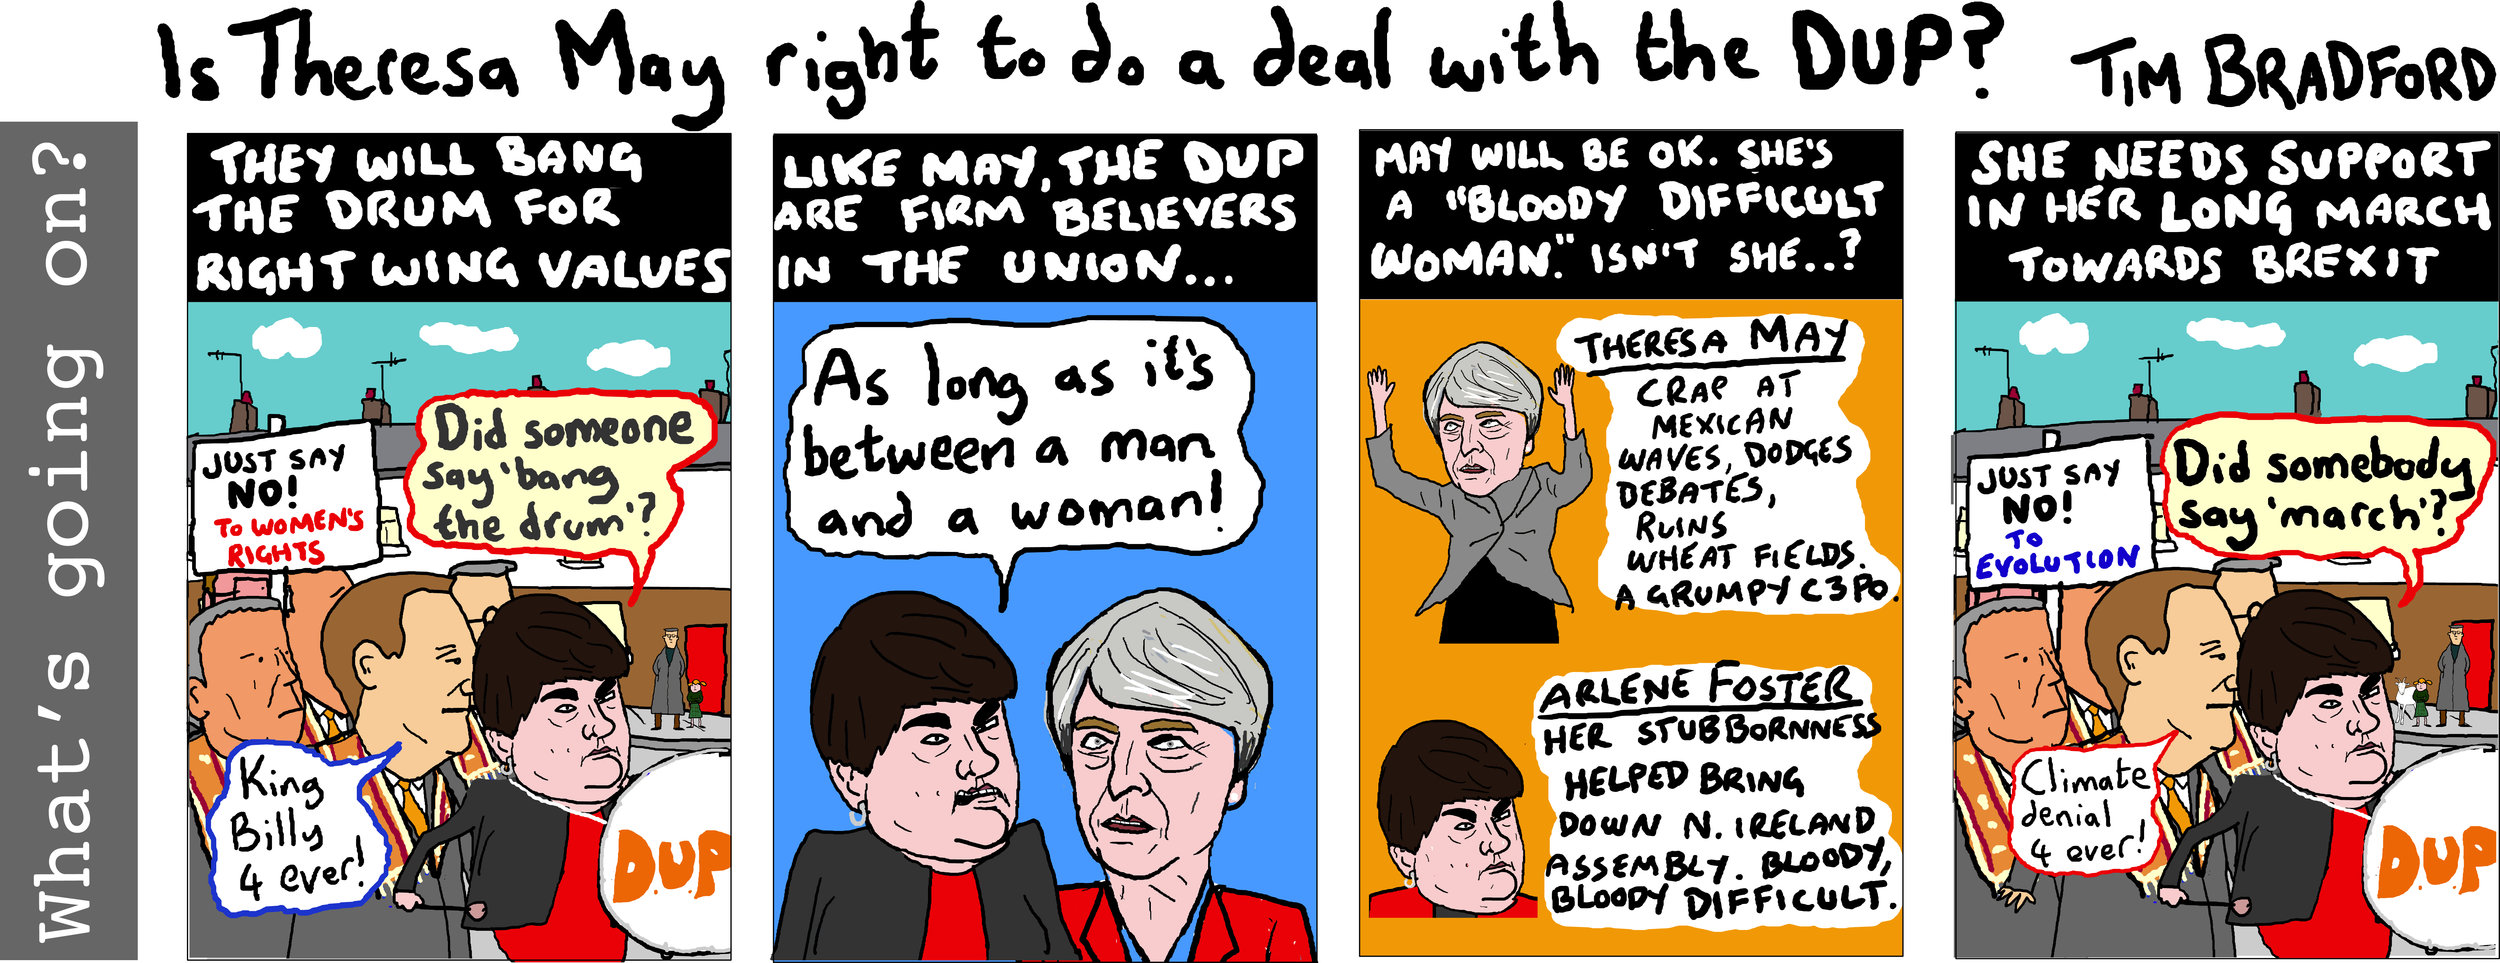 Is Theresa May right to do a deal with the DUP? - 16/06/17